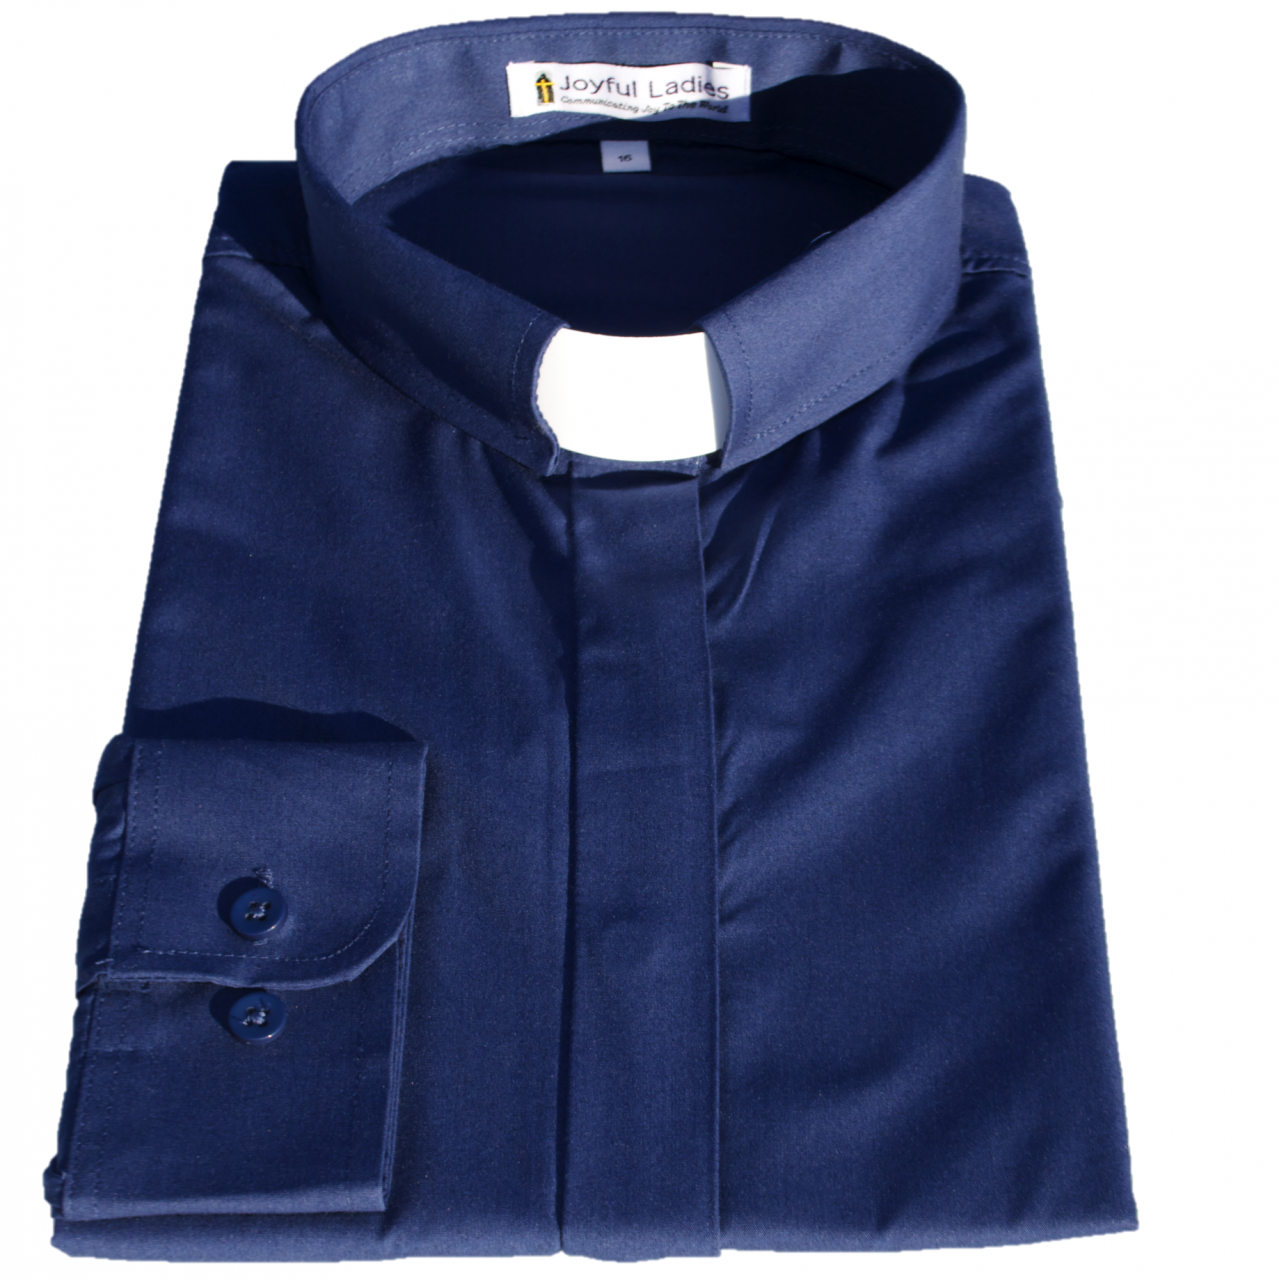 Women's Long-Sleeve Tab-Collar Clergy Shirt - Navy